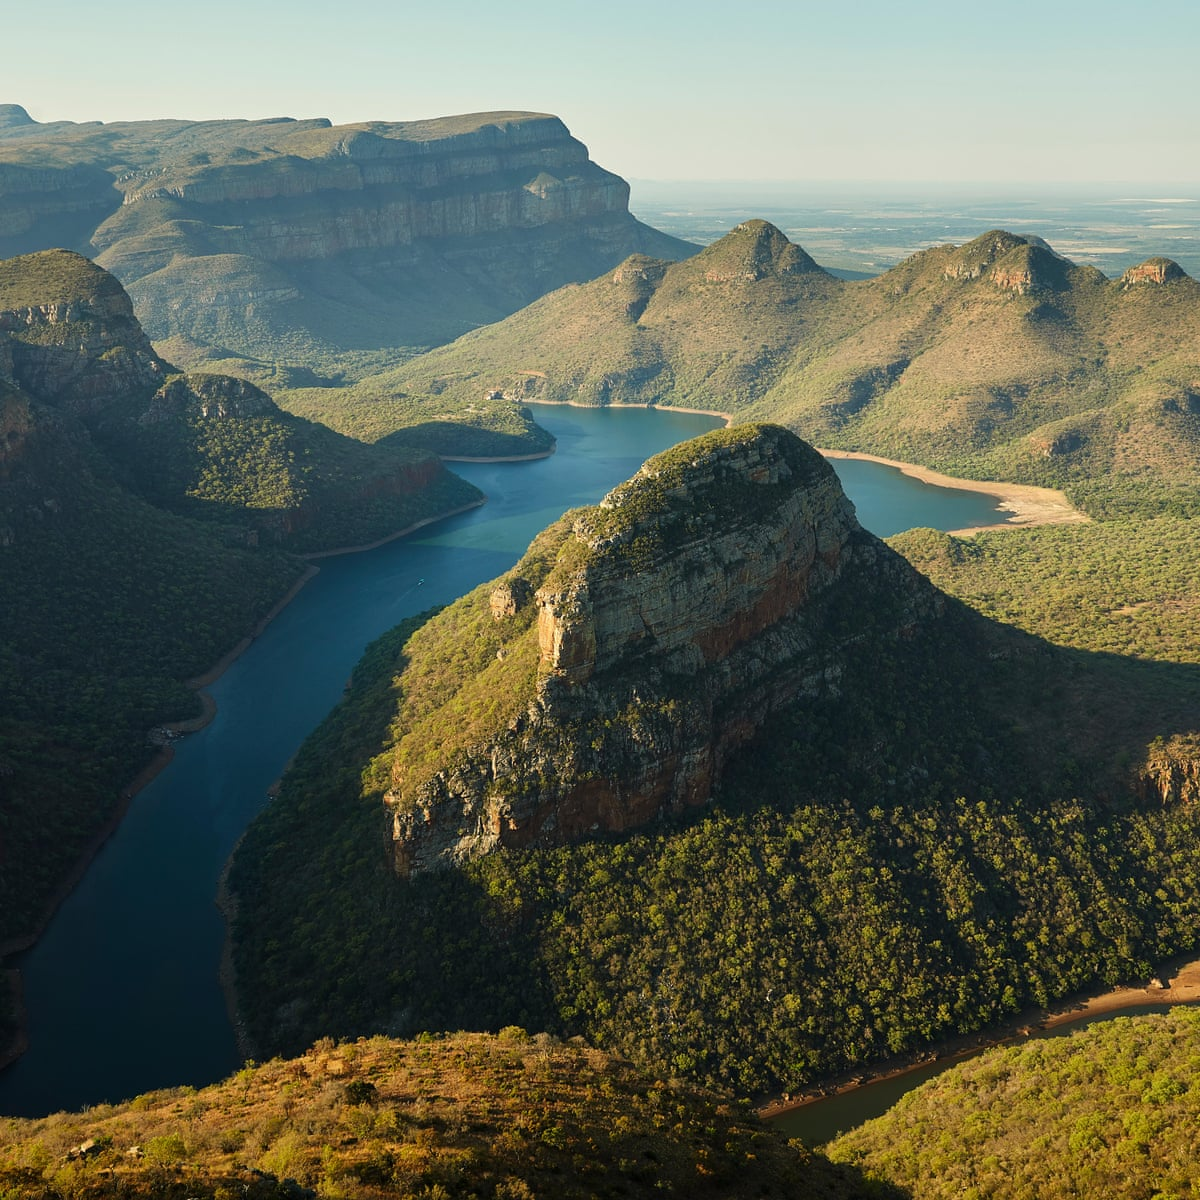 Game Changer Touring South Africa By Campervan South Africa Holidays The Guardian